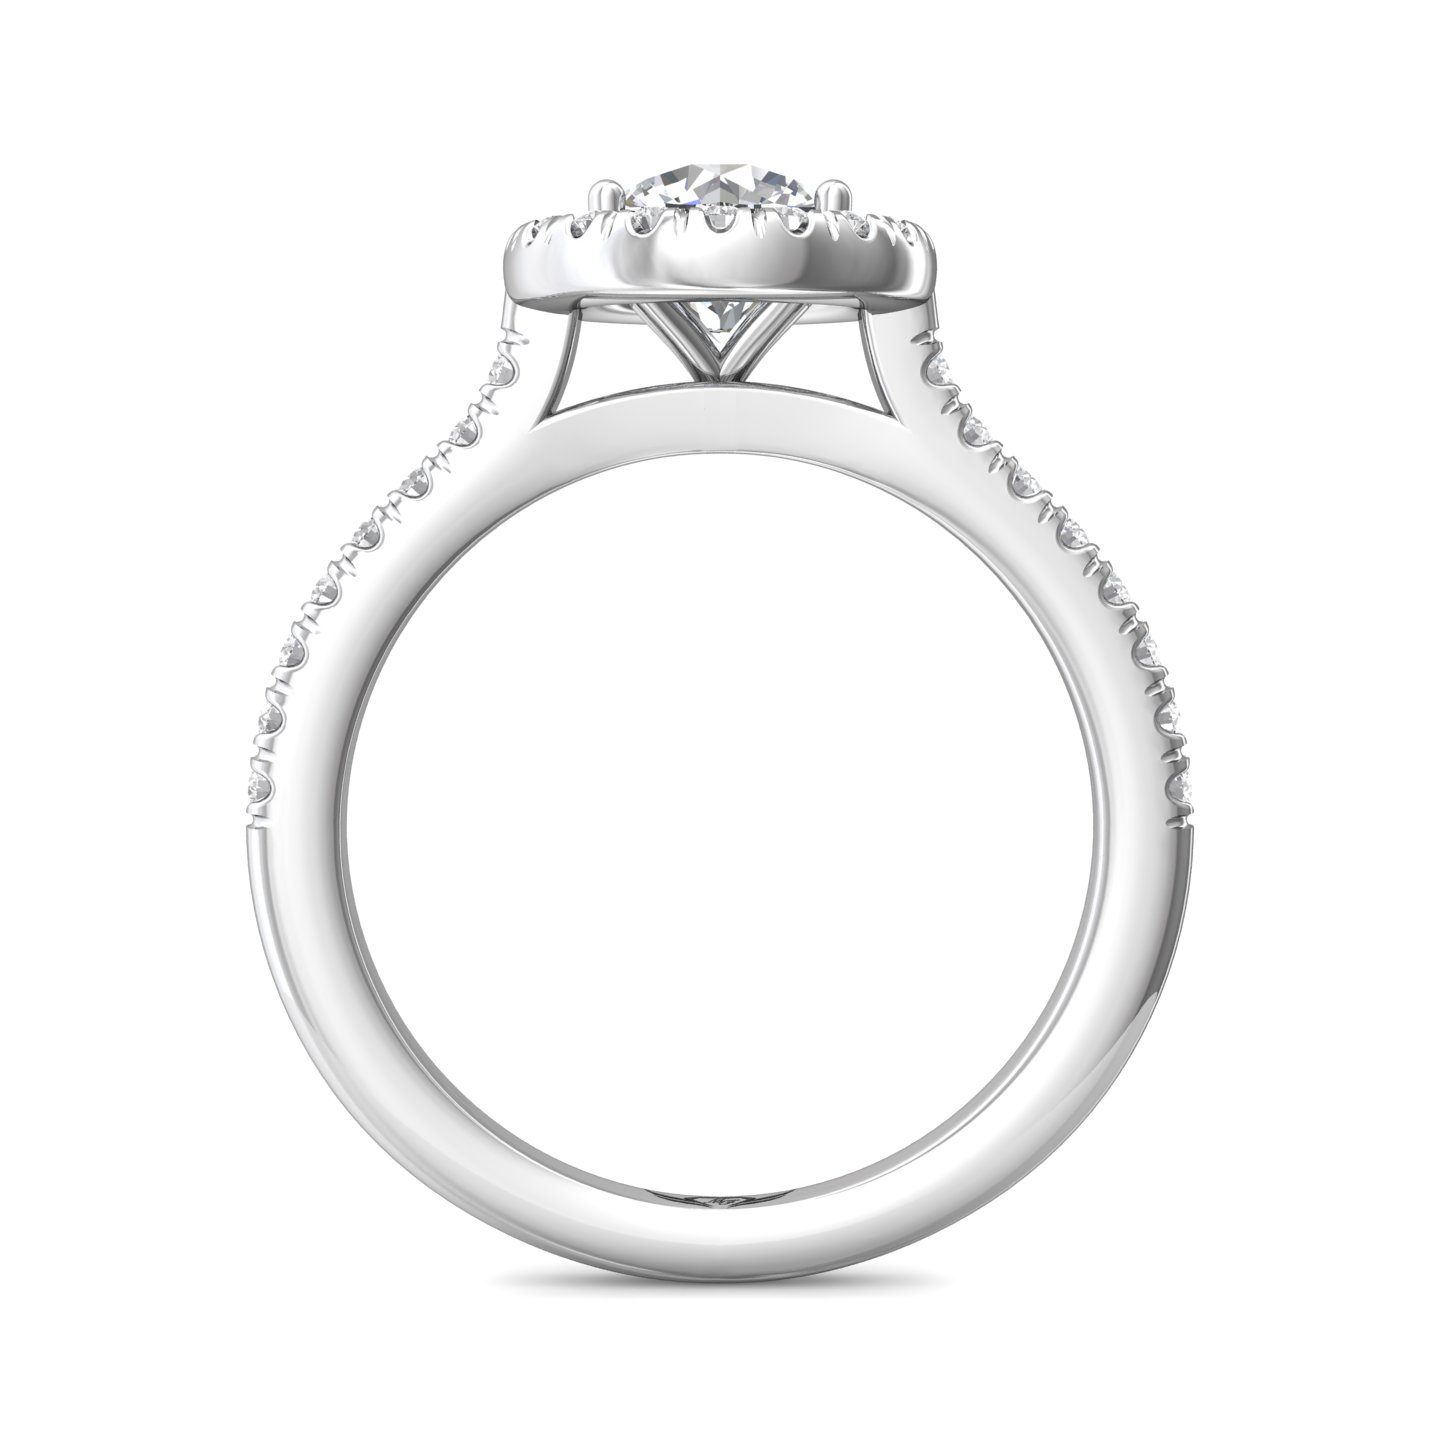 Rings - 14K White Gold FlyerFit Micropave Halo Engagement Ring - image 2